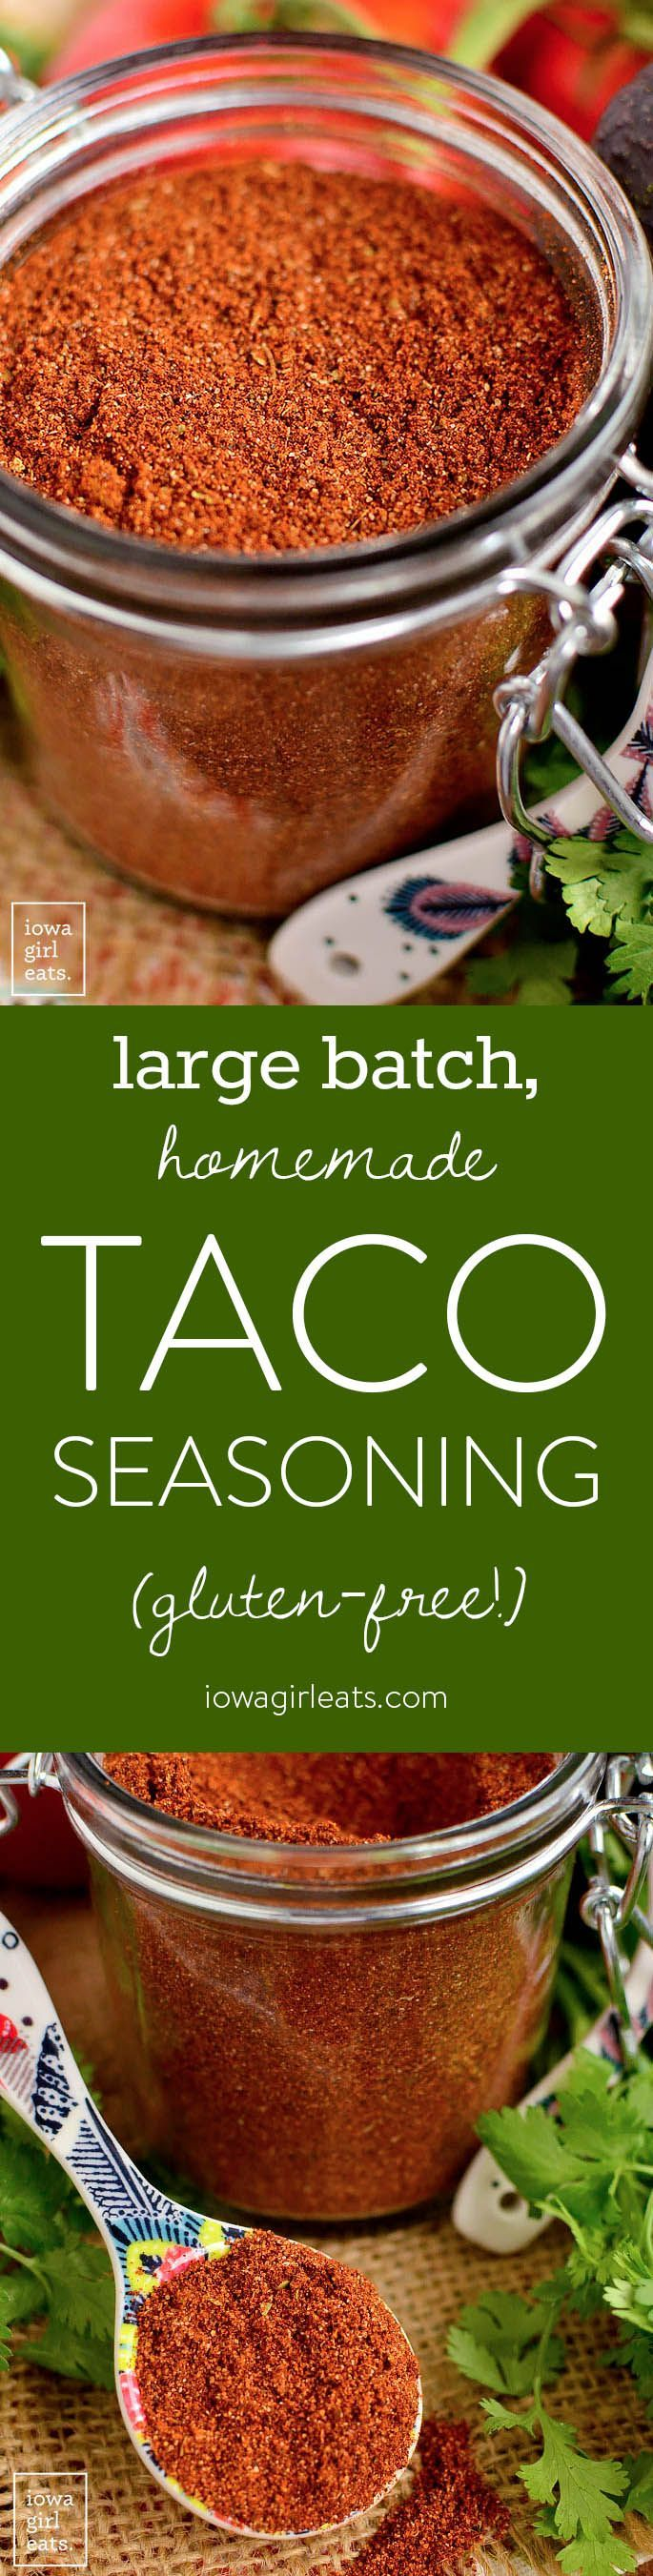 Large Batch Homemade Taco Seasoning is a cinch to prepare and ready when you are for taco night! Free from gluten, dairy, artificial flavors and colors, and preservatives.   iowagirleats.com